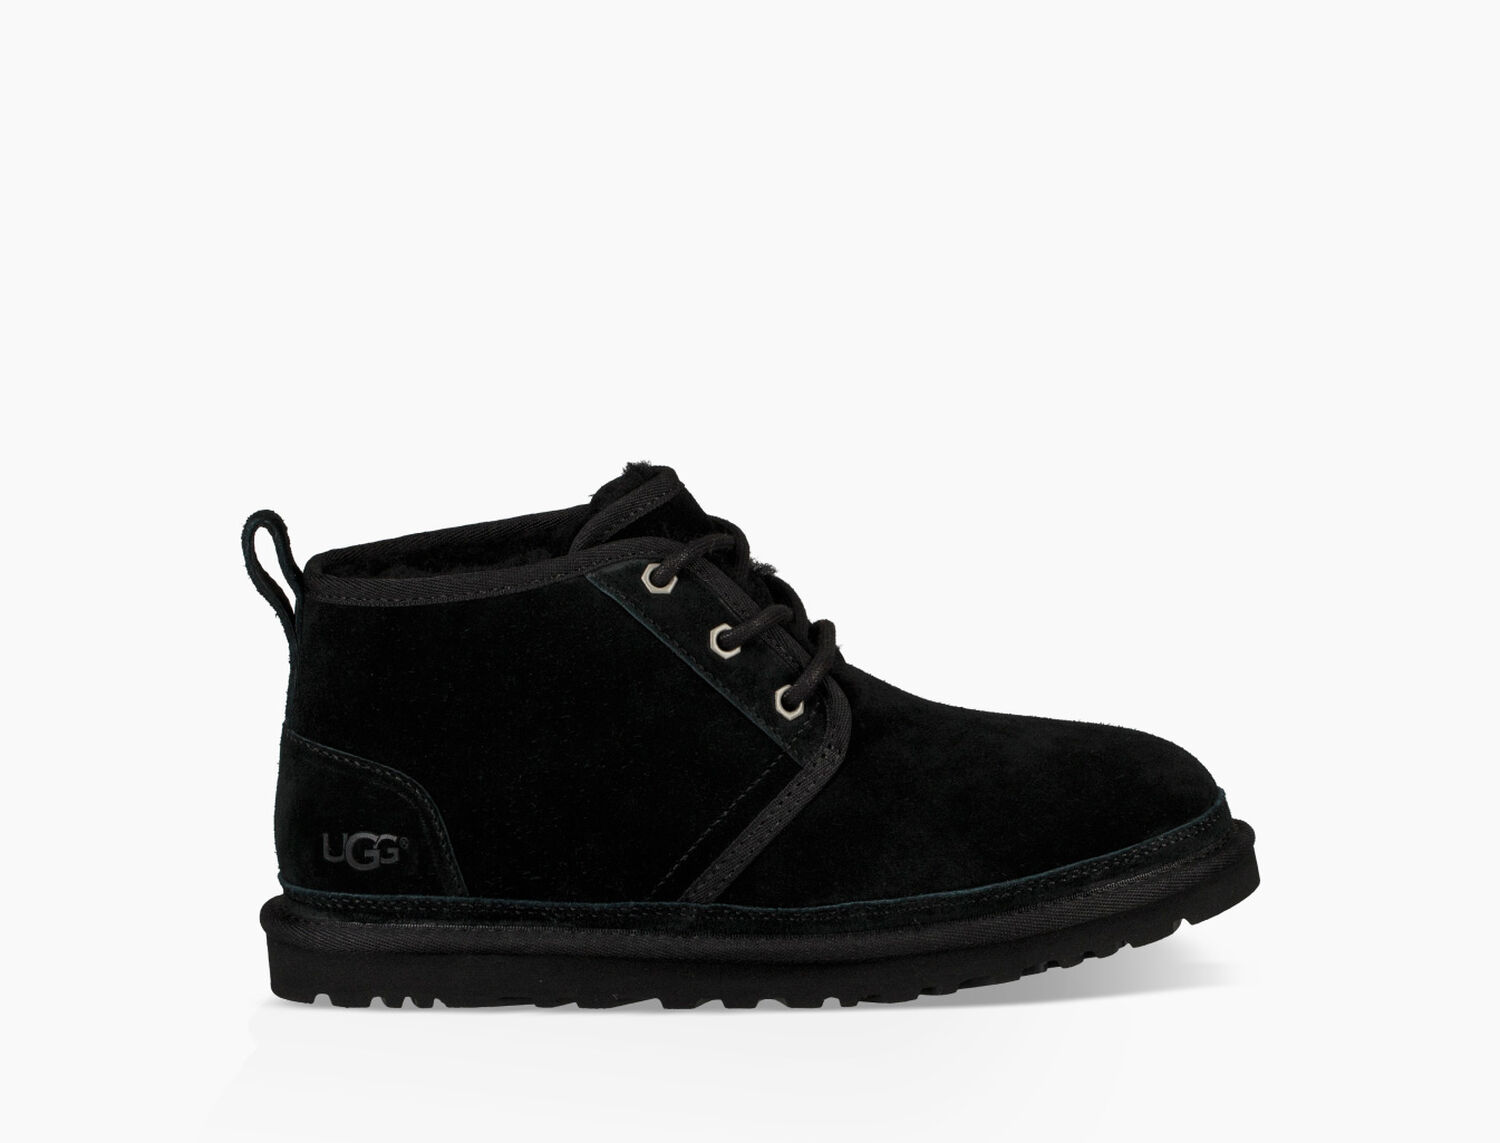 8da36d7f6 Women's Neumel Chukka Boot | UGG® Official